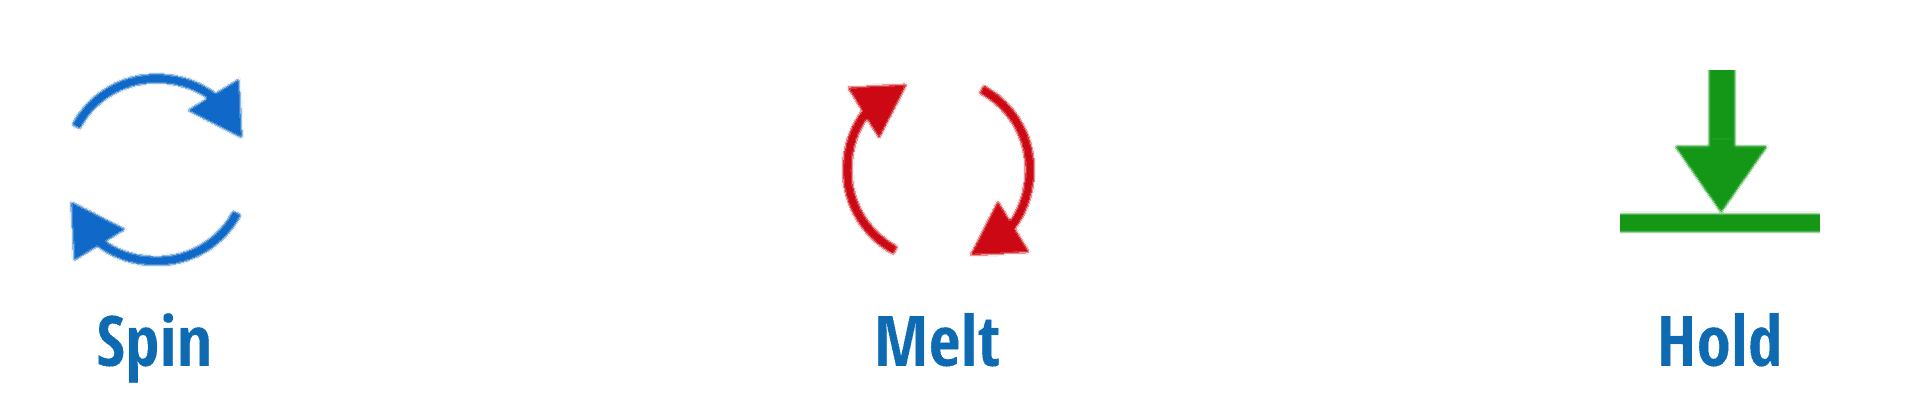 spin melt and hold - spin welding diagram